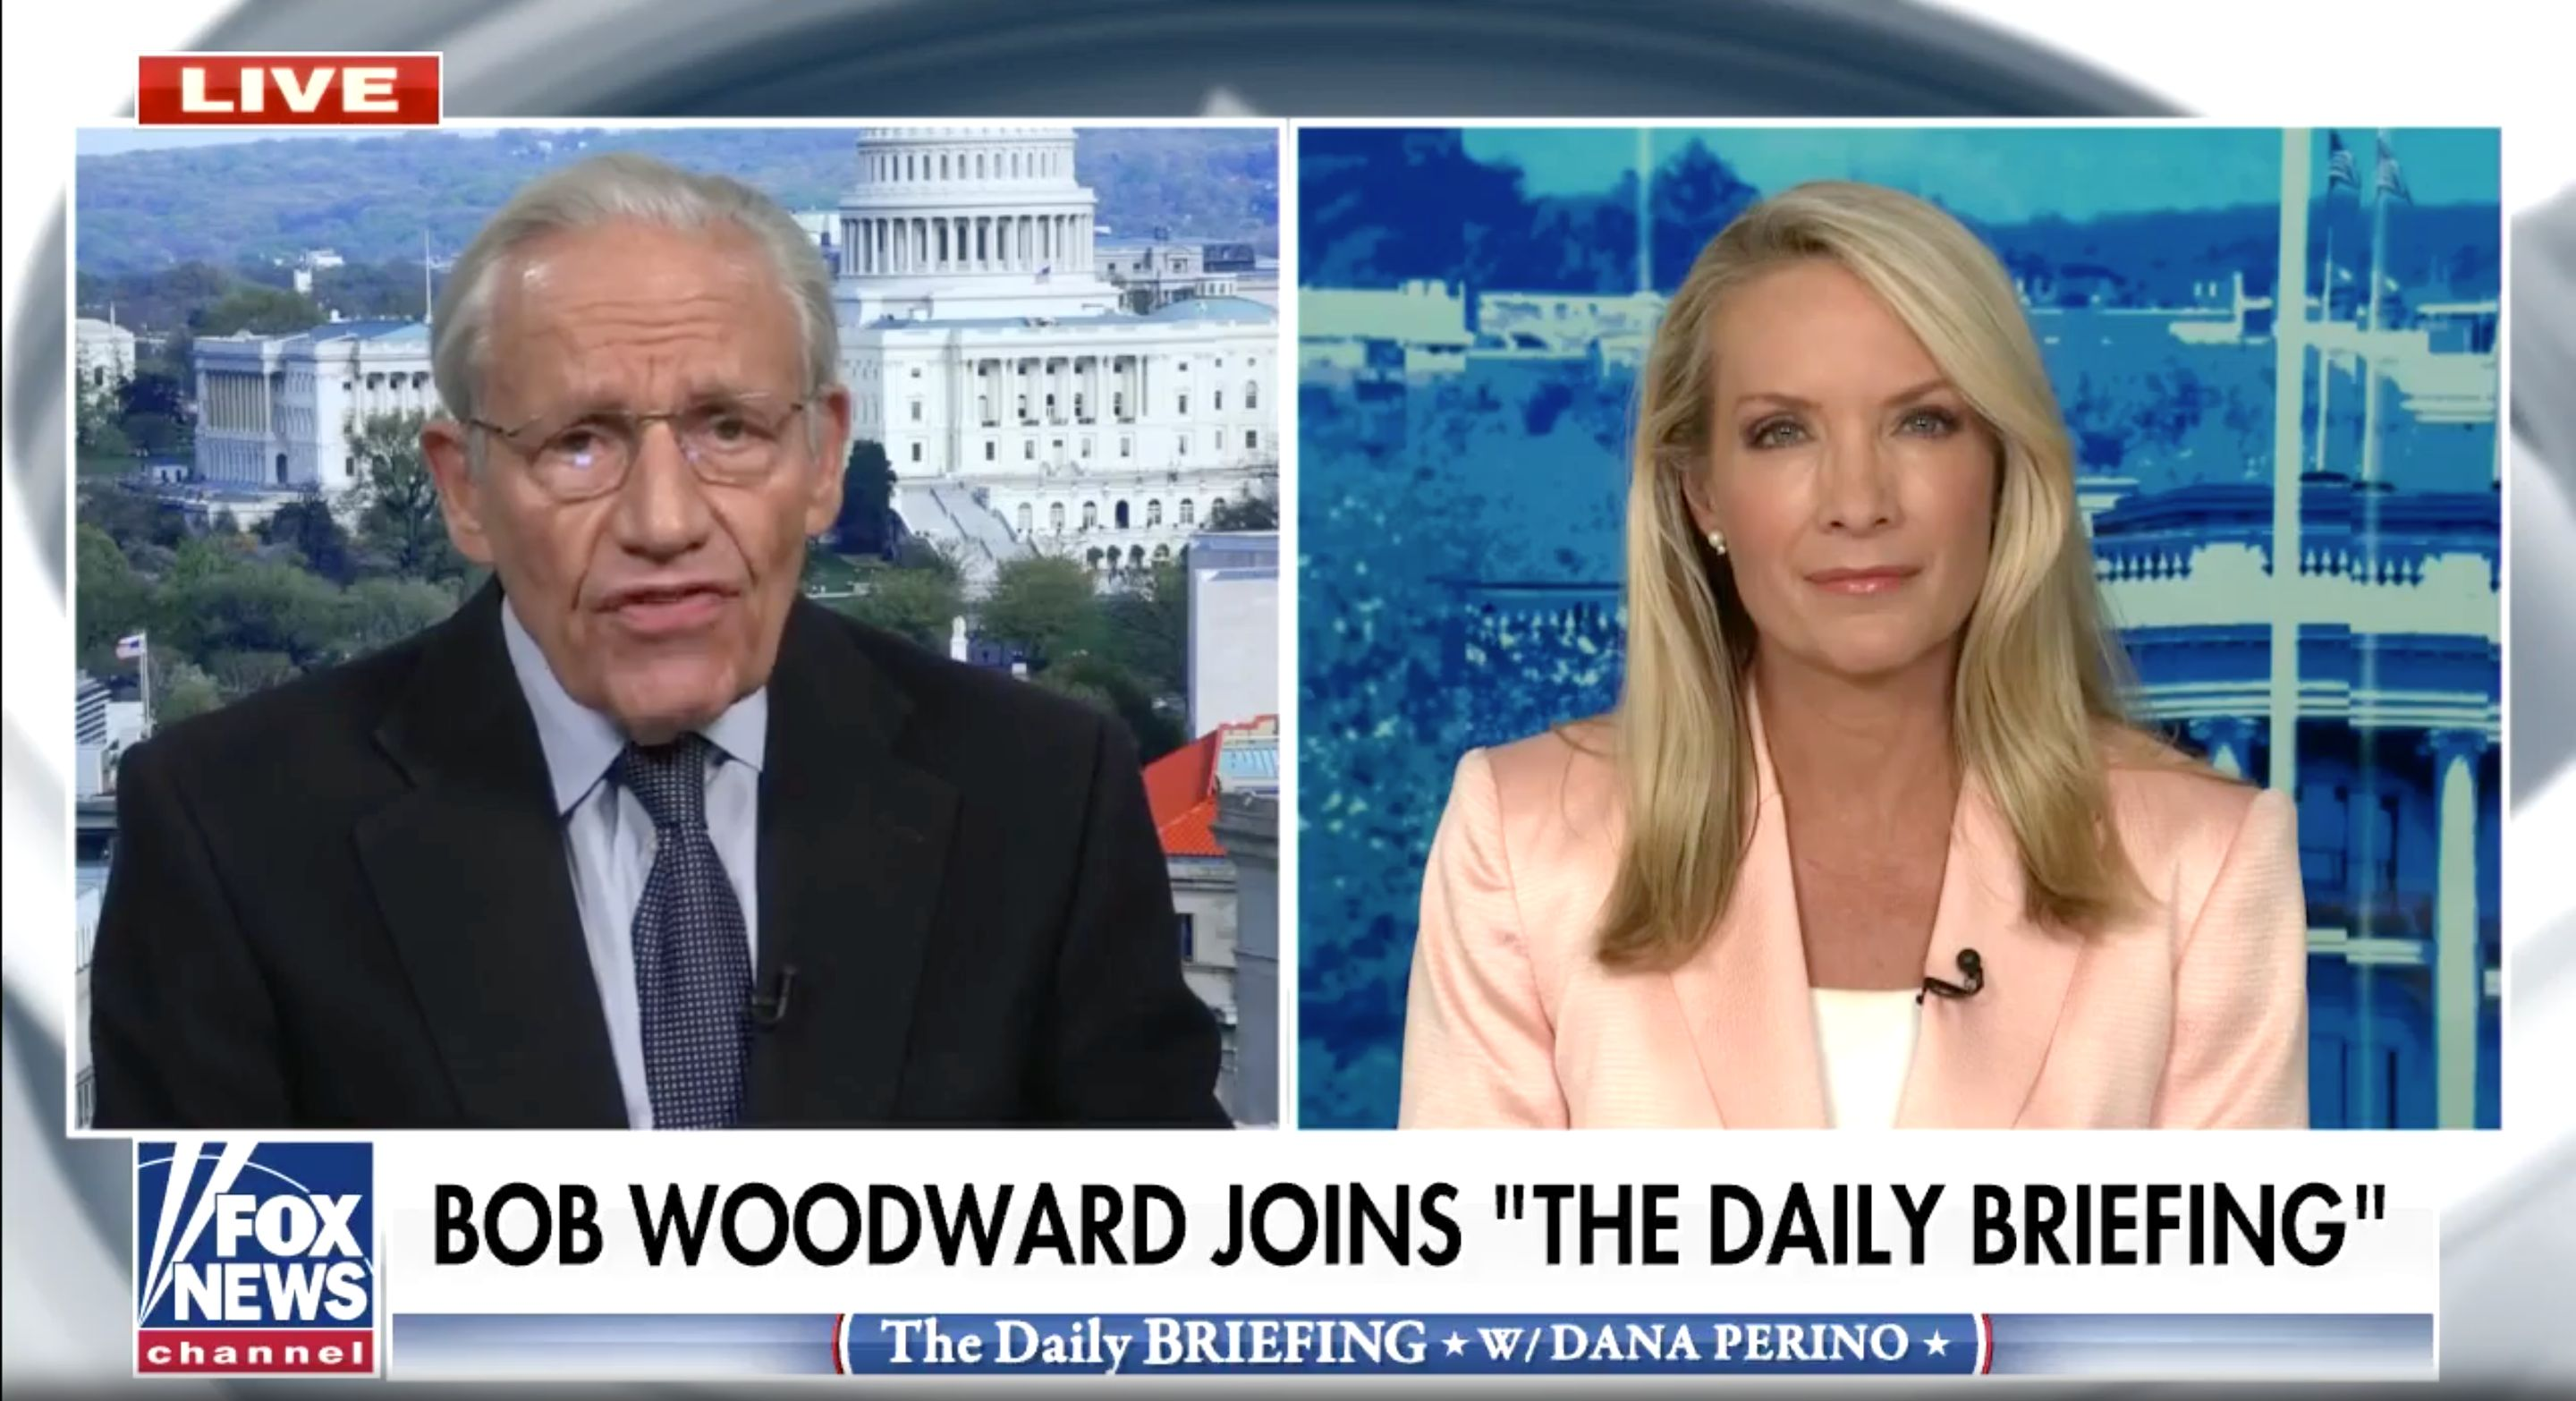 Bob Woodward Clashes With Fox News Host Over His Conclusions About Trump this is why